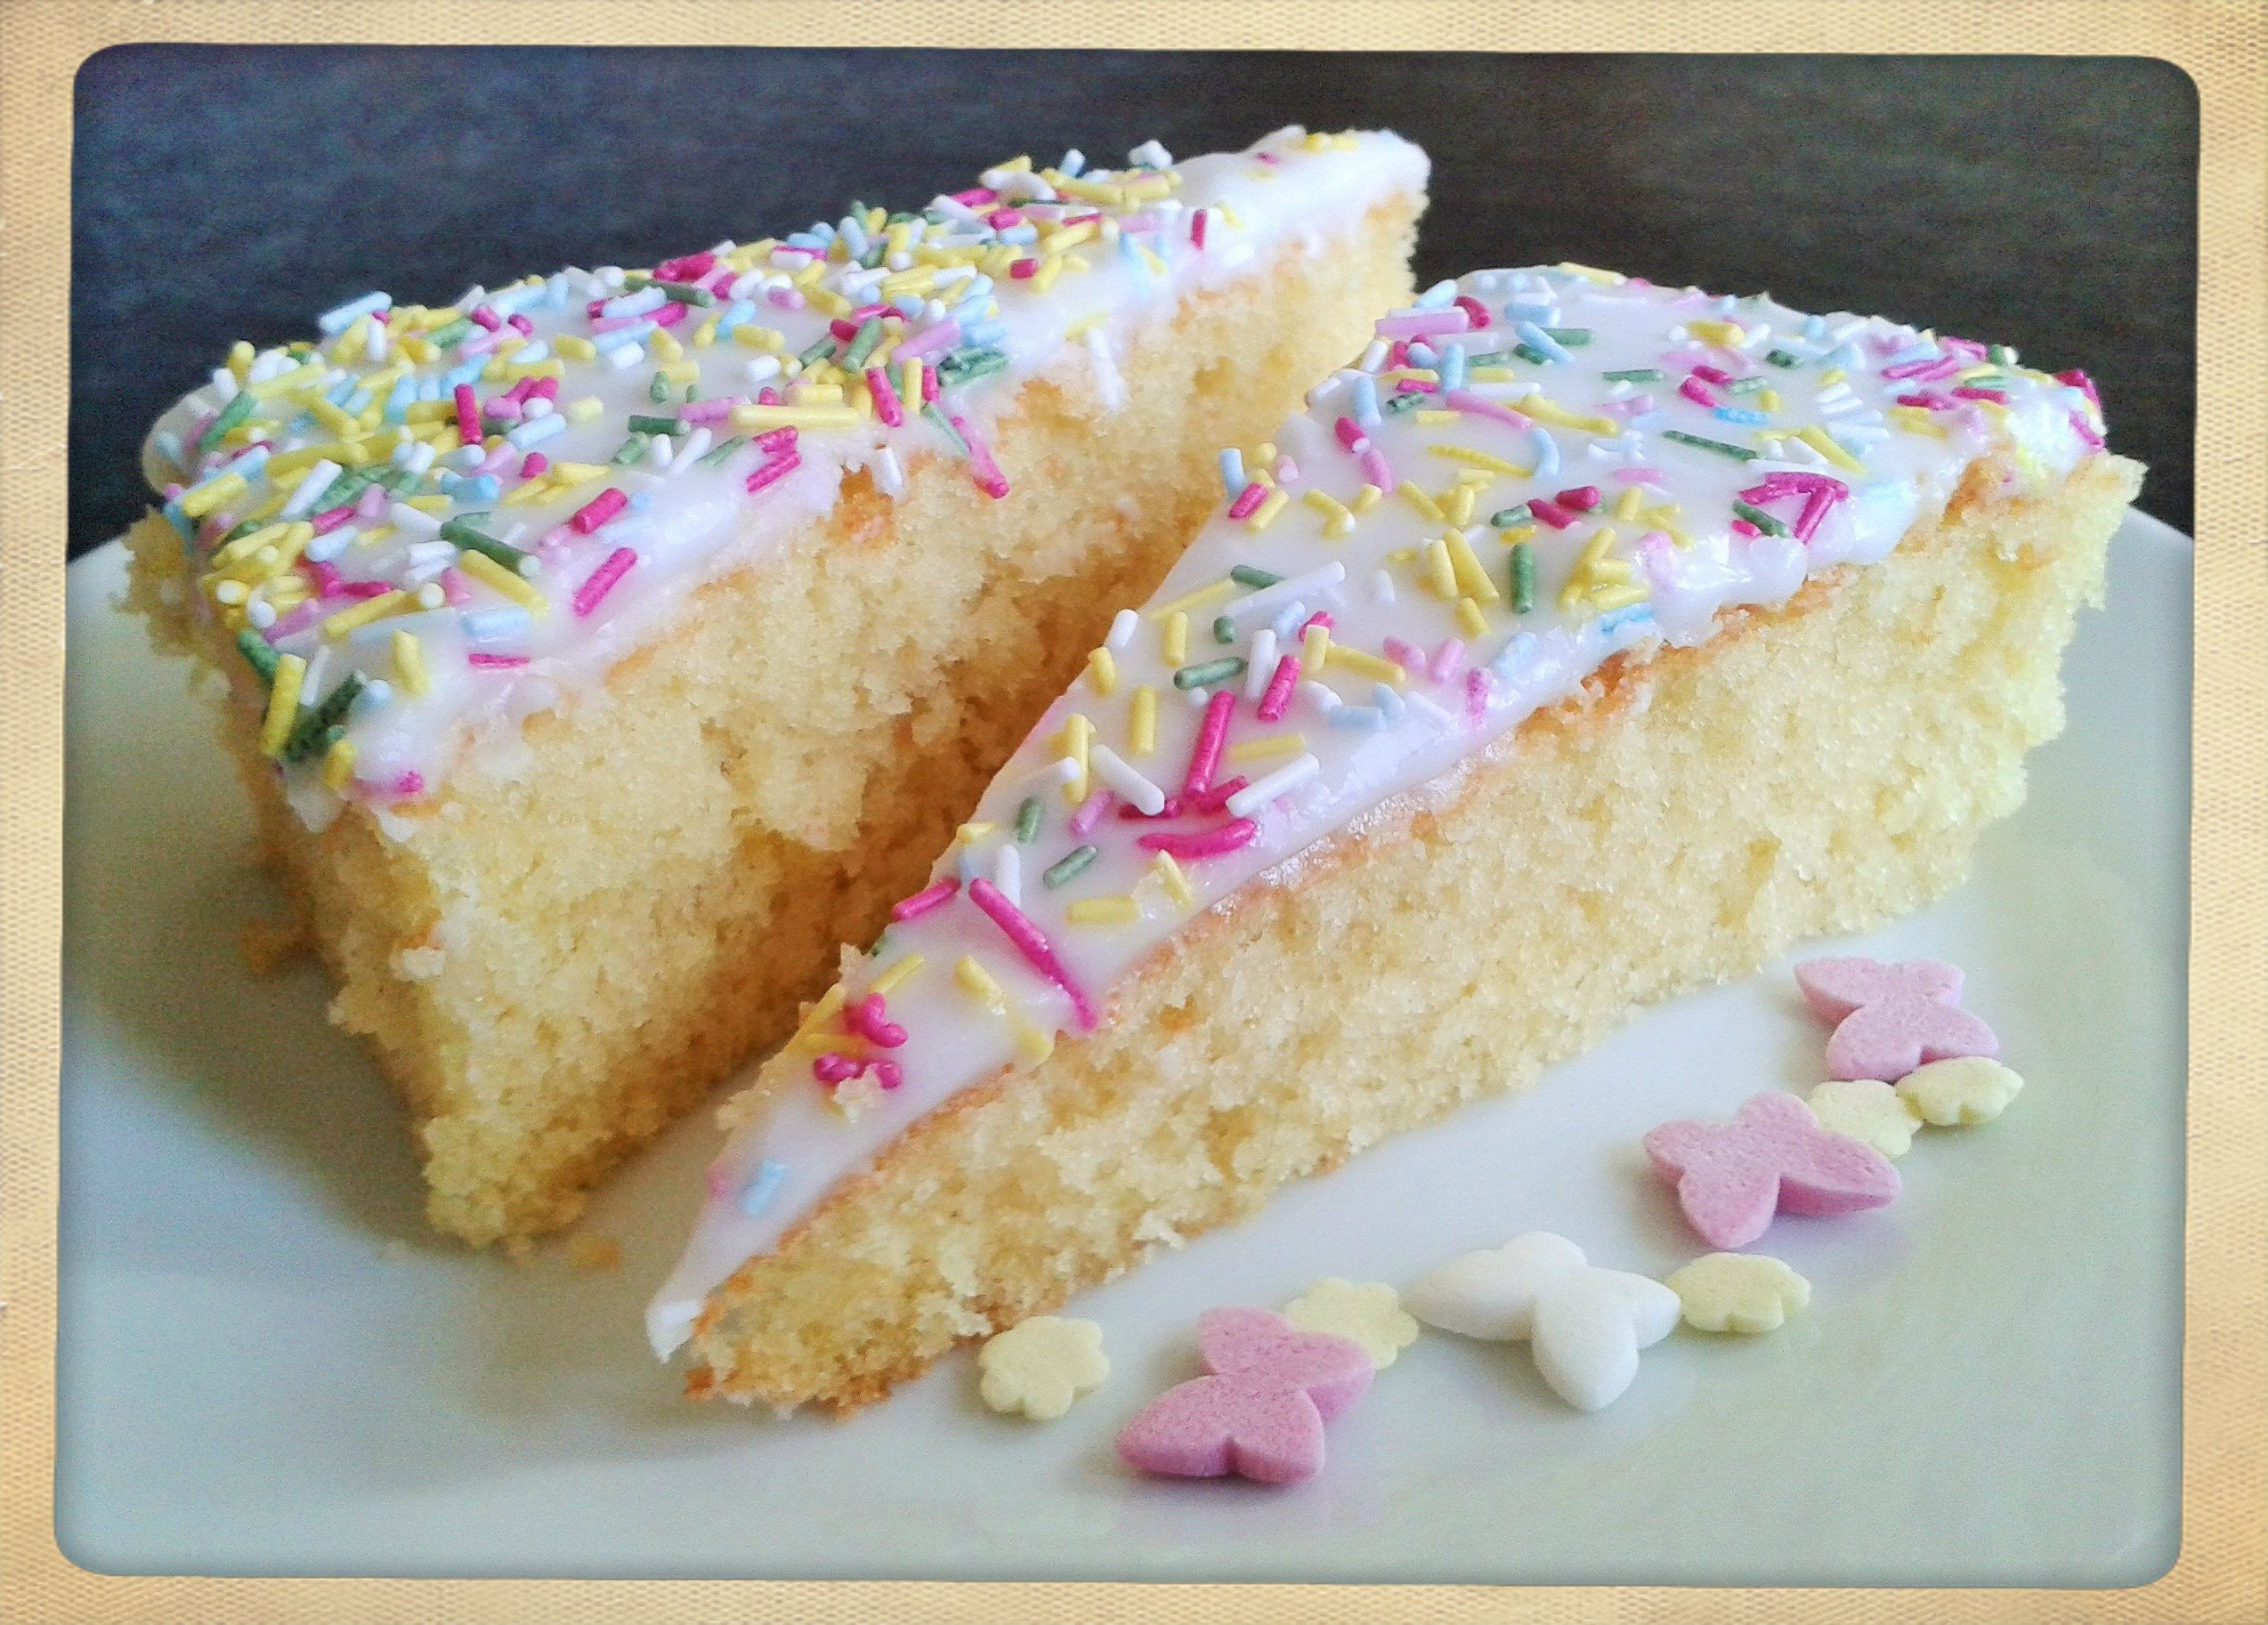 Sprinkle Cake Recipe Joy Of Baking: Simple School Sponge Cake With White Icing And Sprinkles